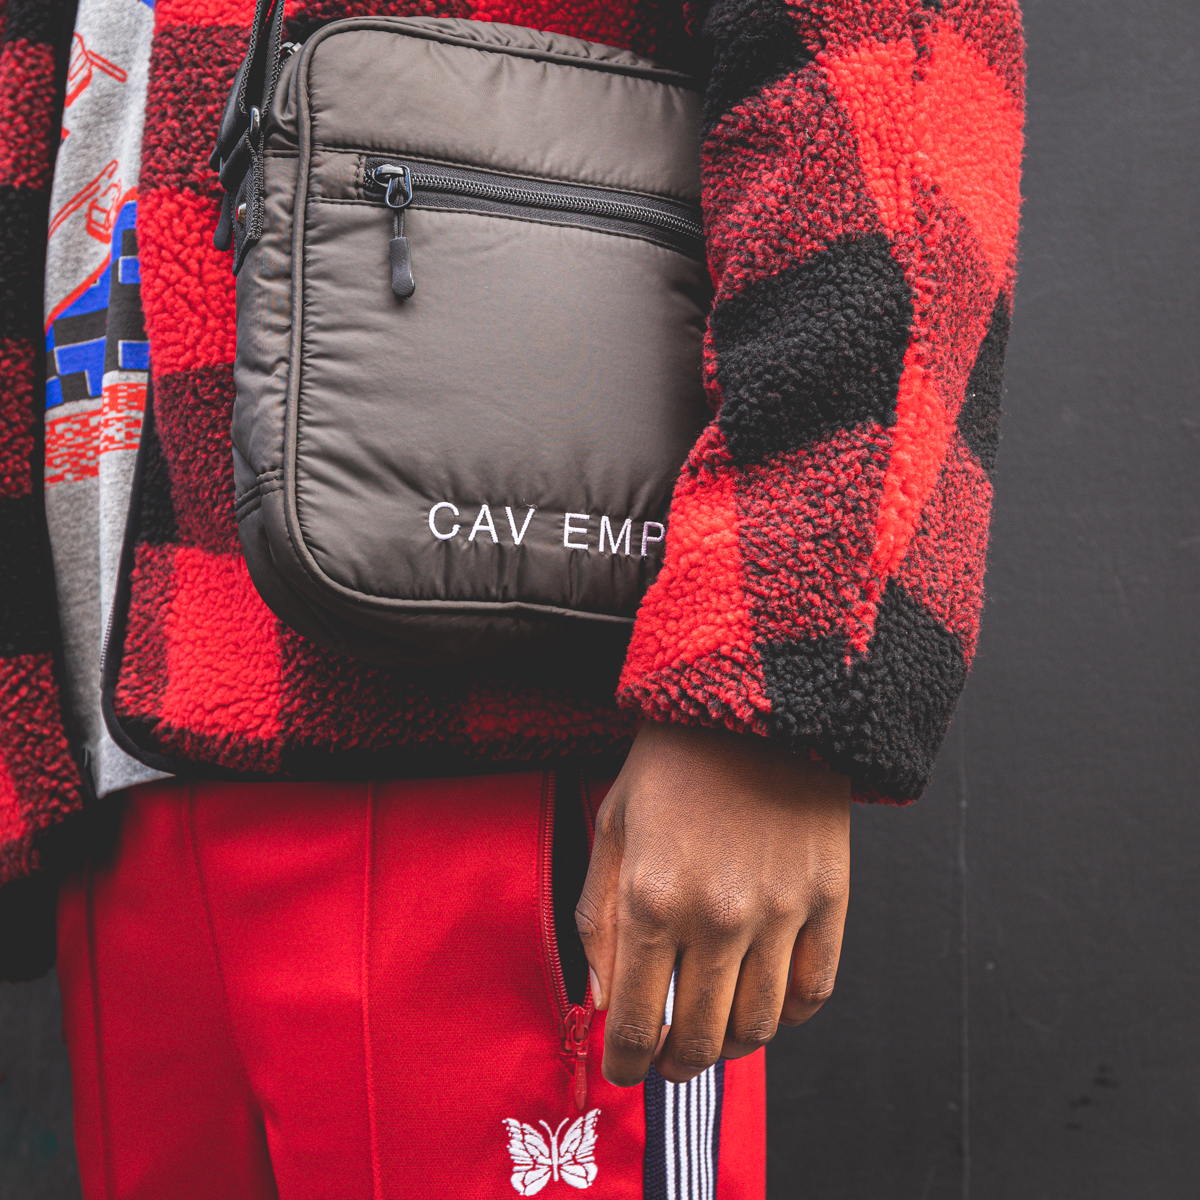 Staff Fit including Cav Empt, Needles and Billionaire Boys Club